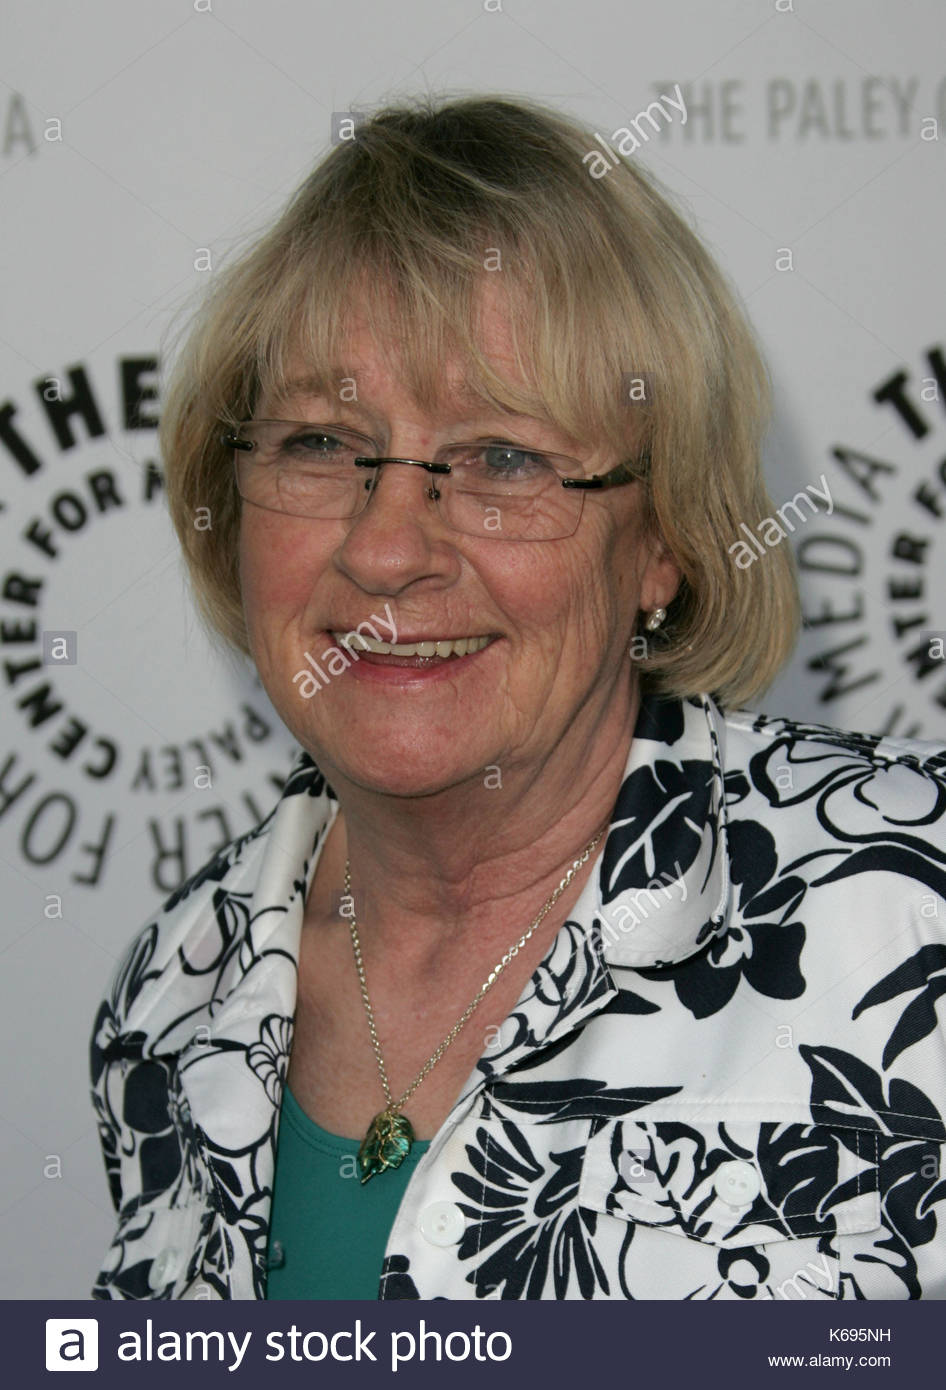 Watch Kathryn Joosten video